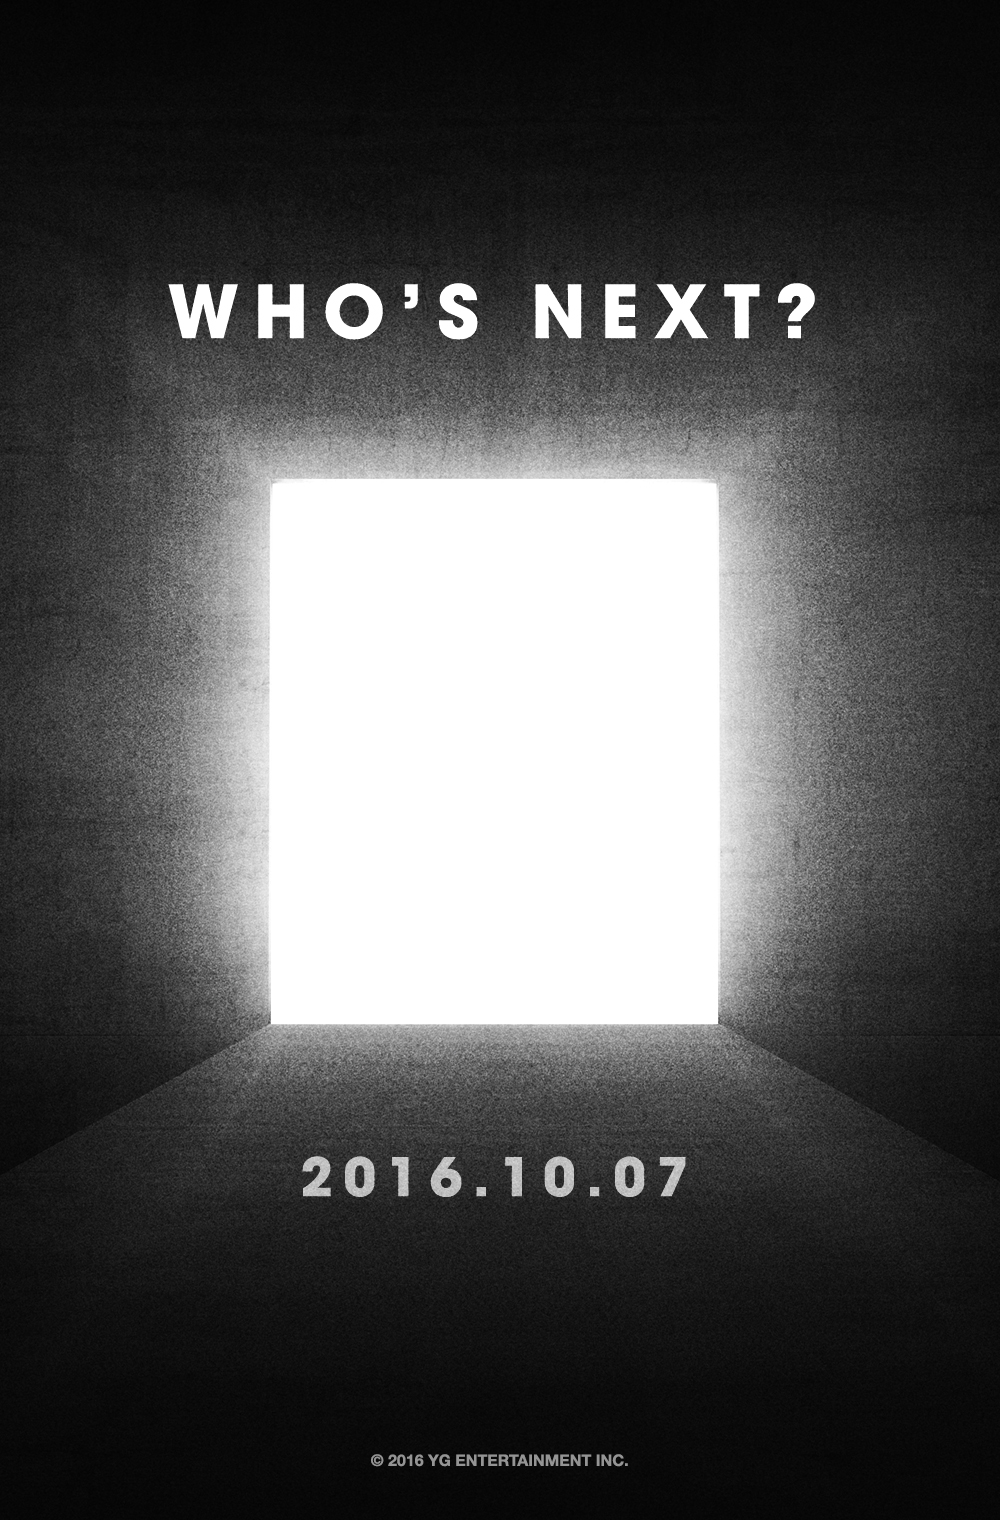 YG Teases Who's Next For An October Release